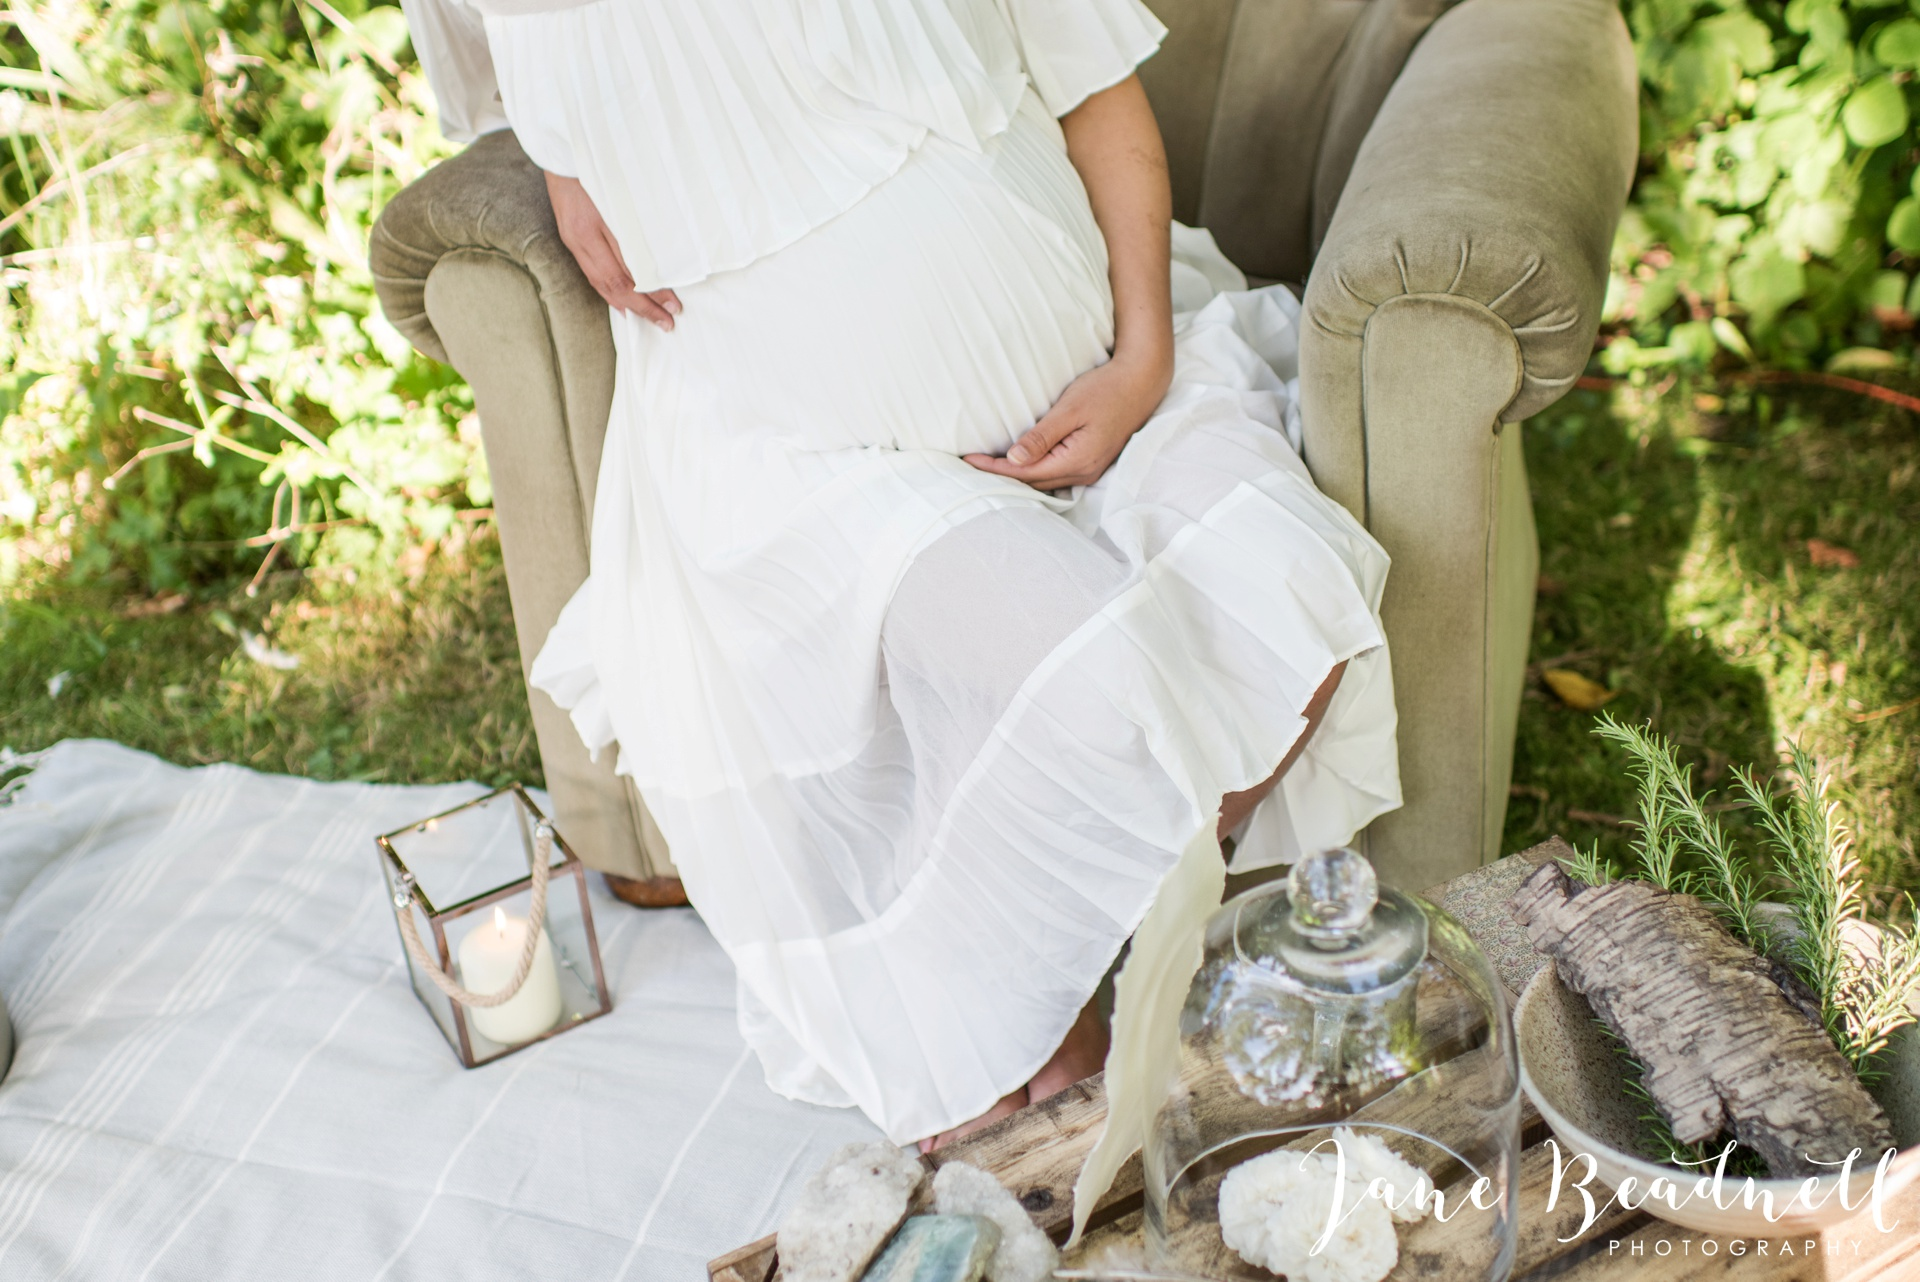 yorkshire-fine-art-wedding-photographer-jane-beadnell-photography-baby-shower-by-forset-found_0024